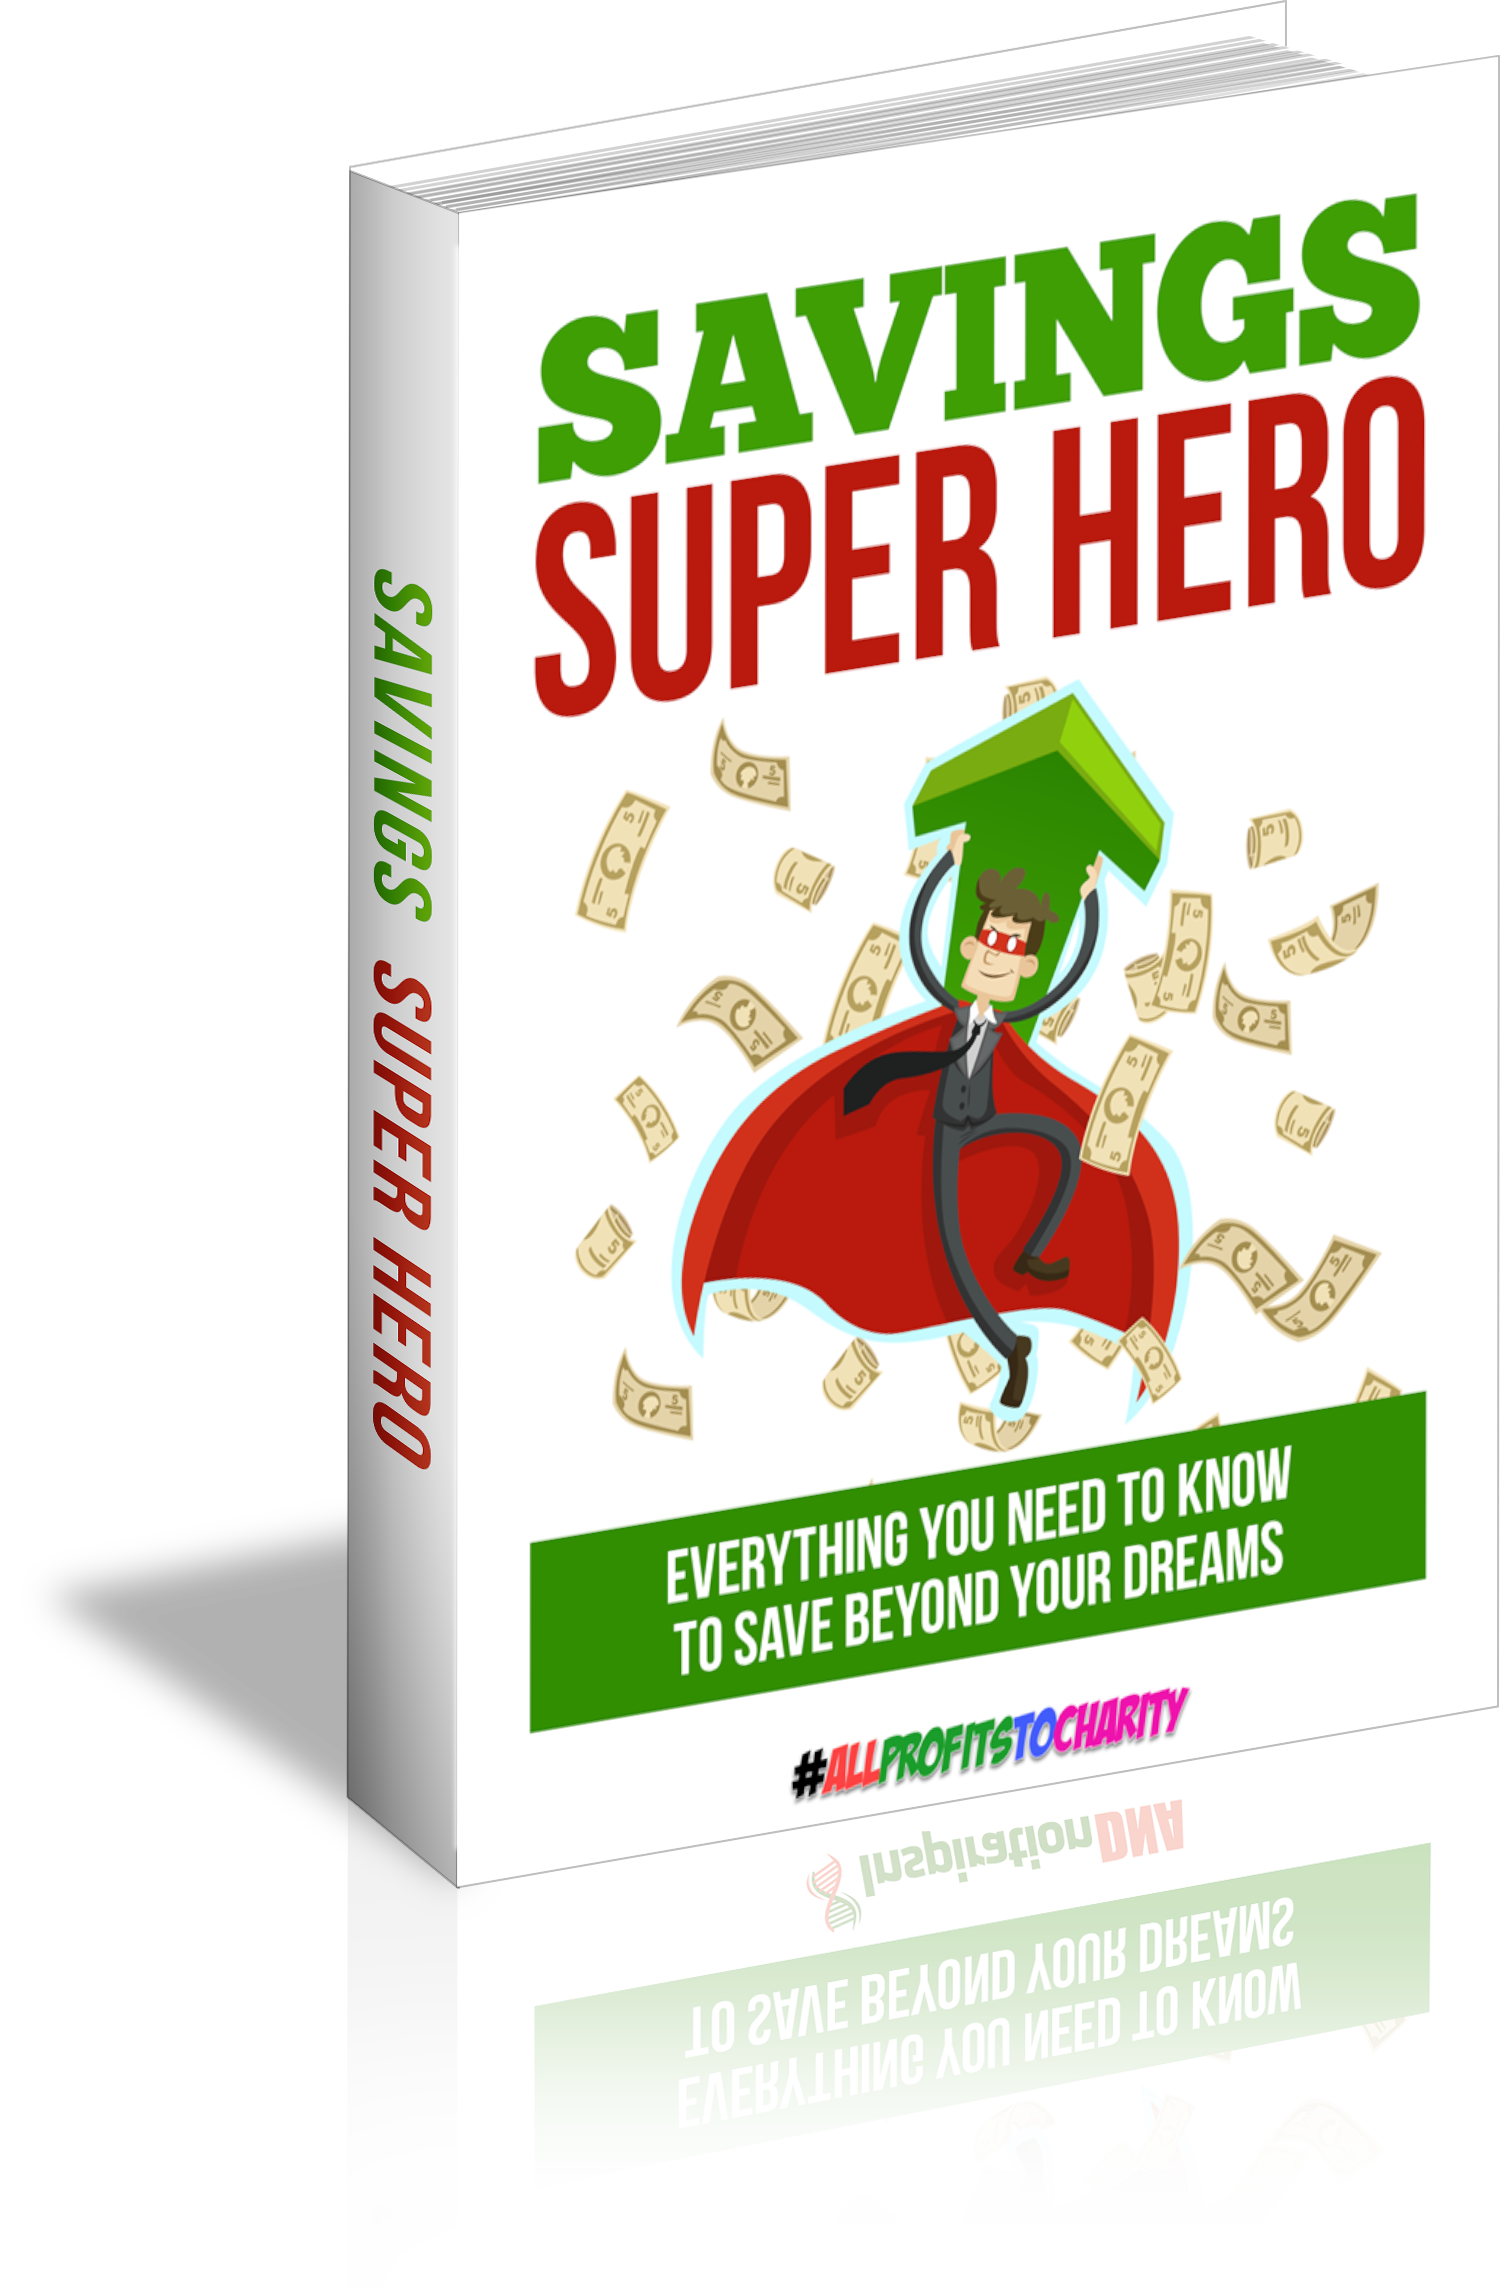 Savings Super Hero cover